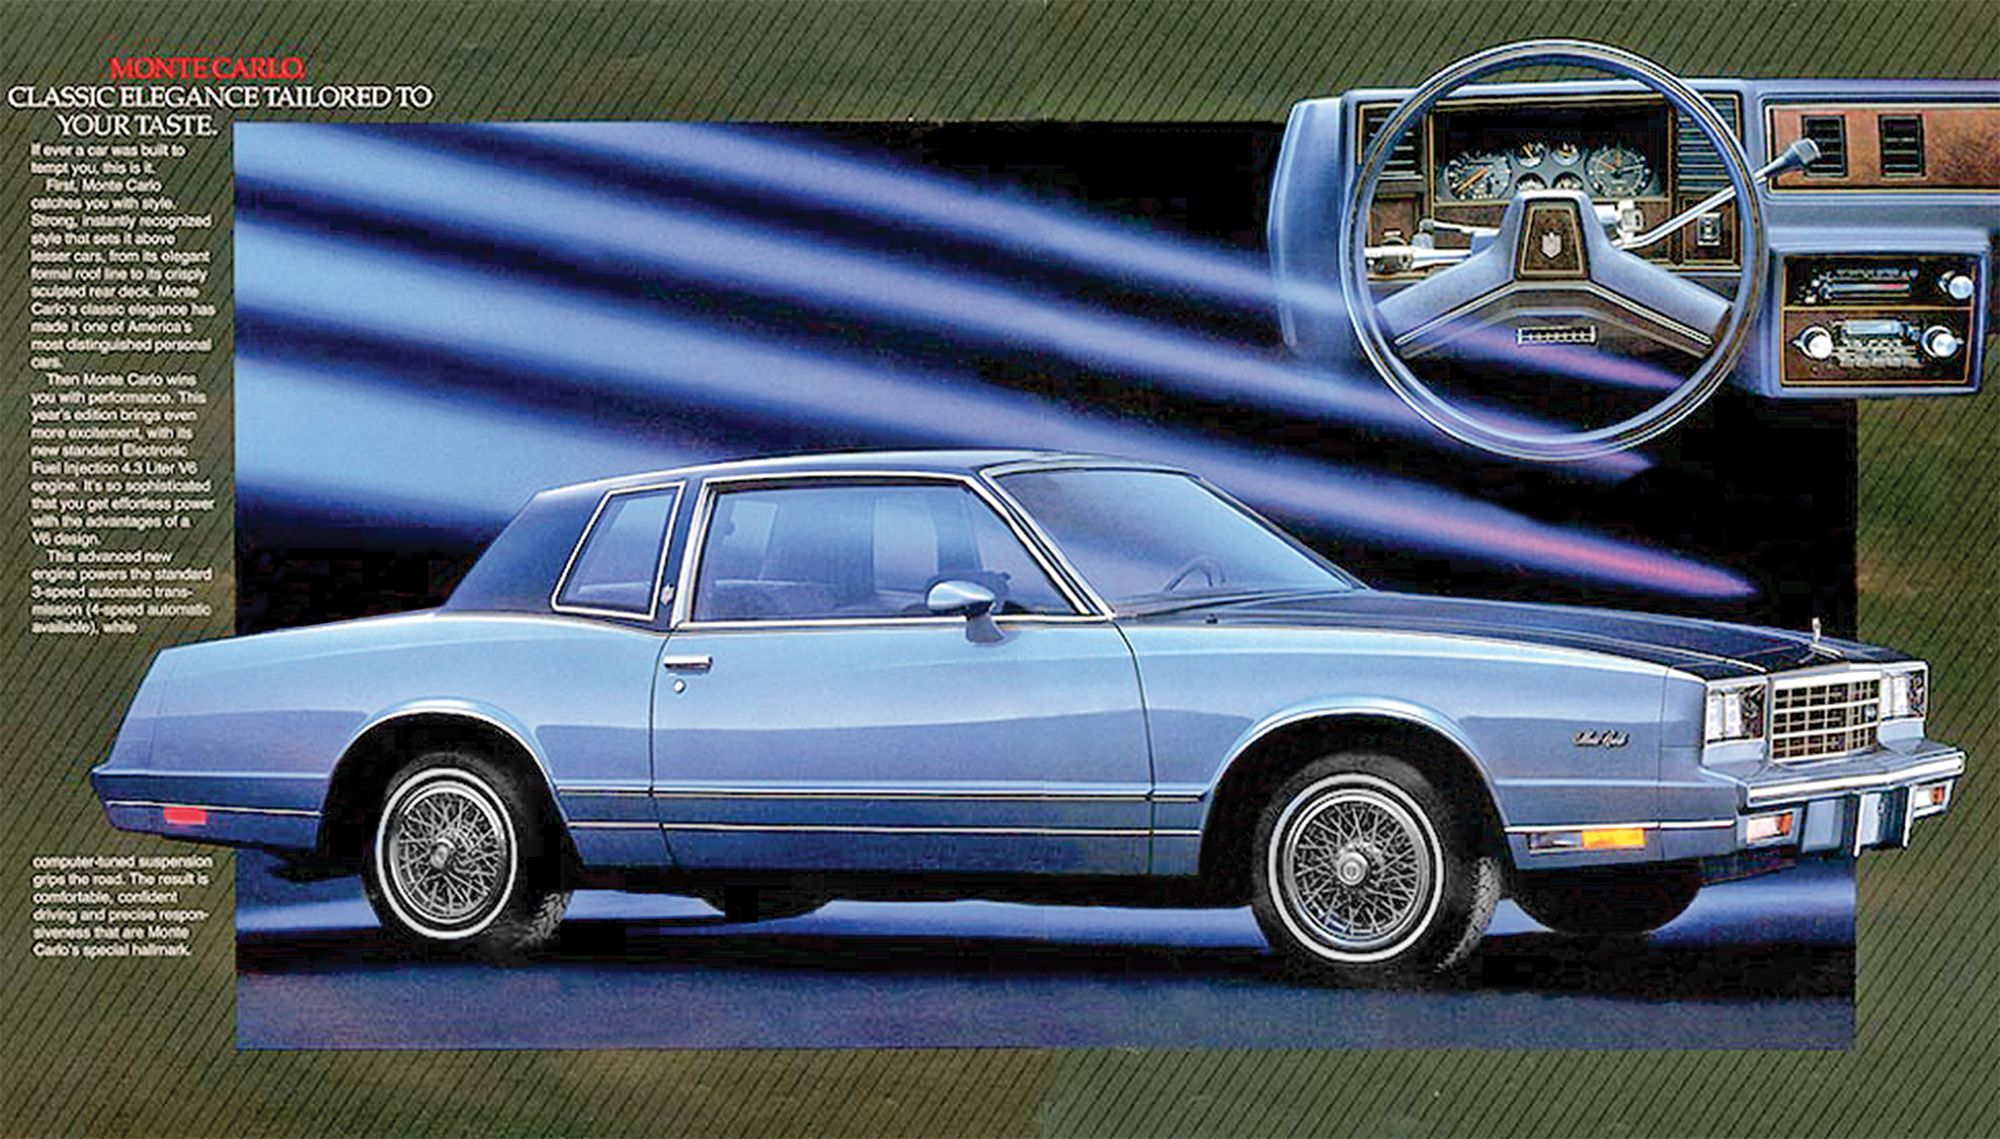 My Family Had This 1985 Monte Carlo It Was So Nice When We Went On Vacation Chevrolet Monte Carlo Chevrolet Monte Carlo